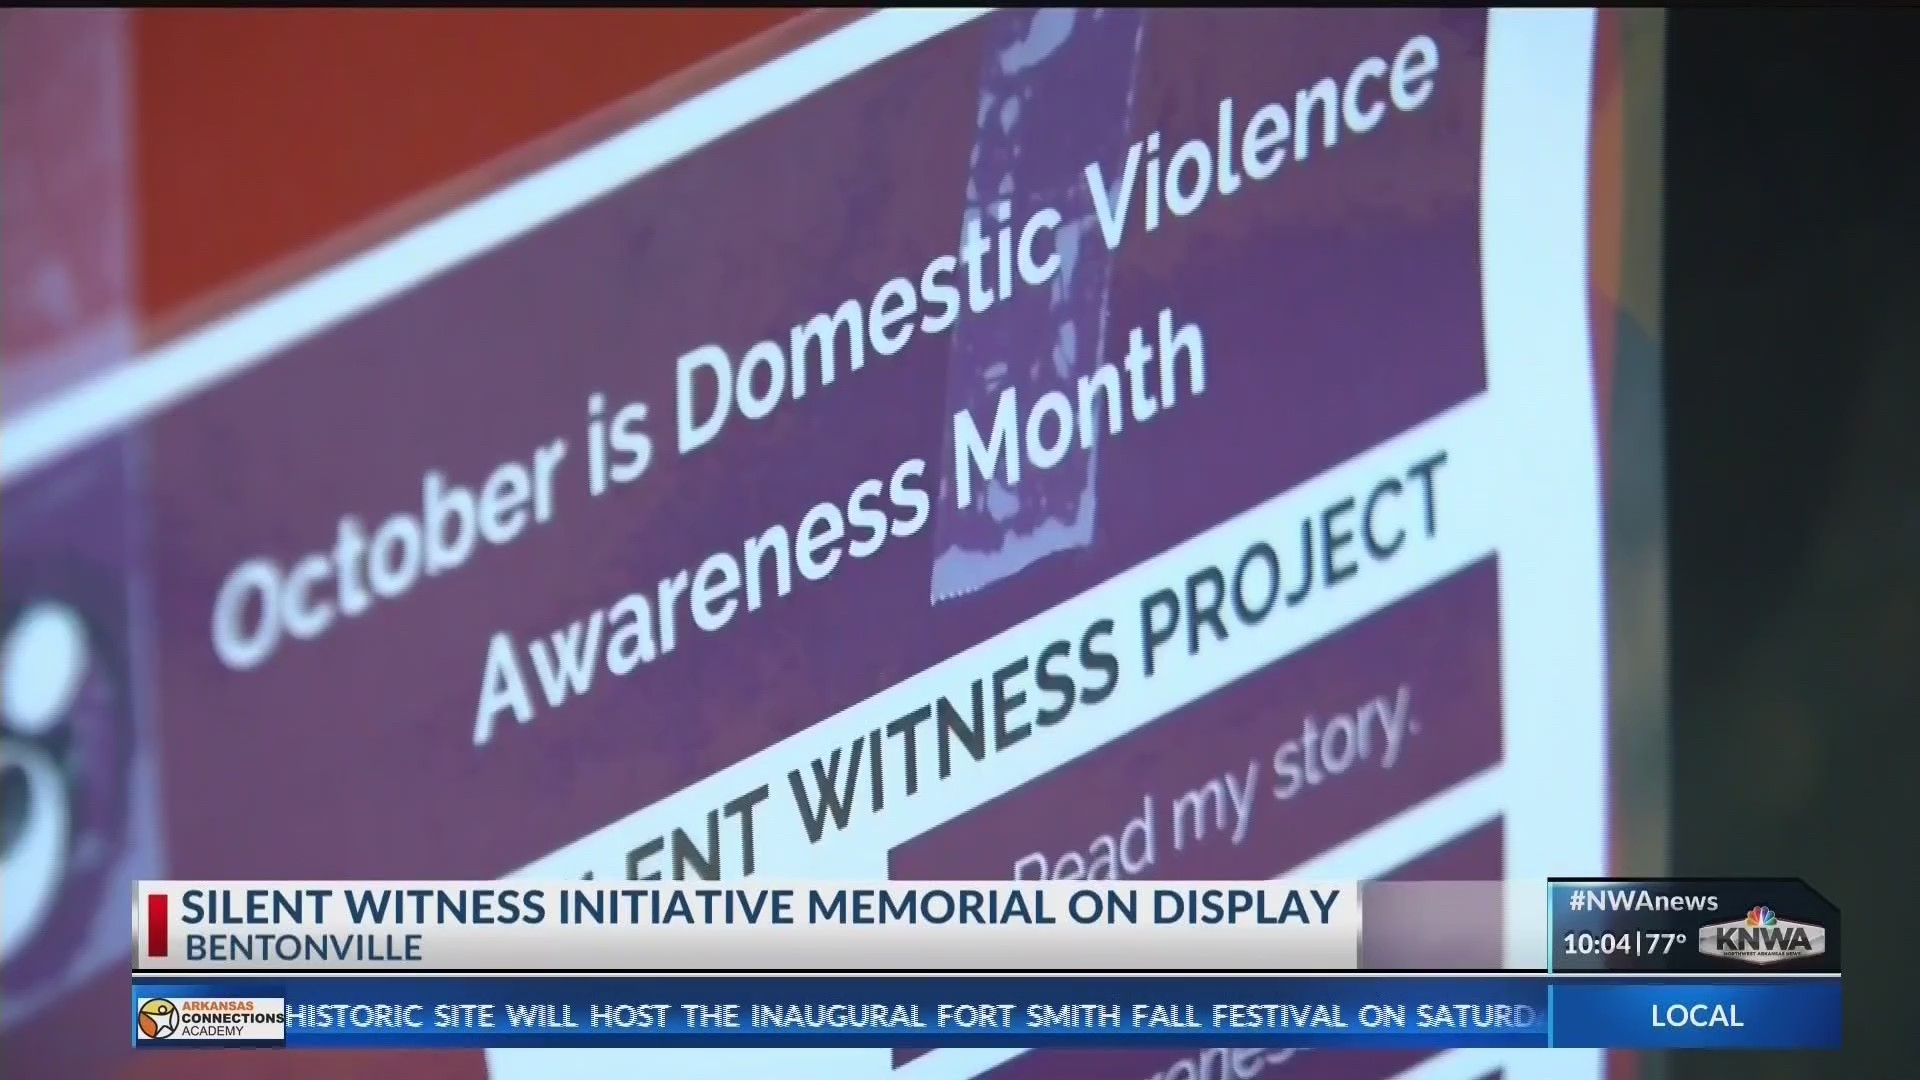 Silent_Witness_Kicks_Off_to_Honor_Domest_0_20181006031224